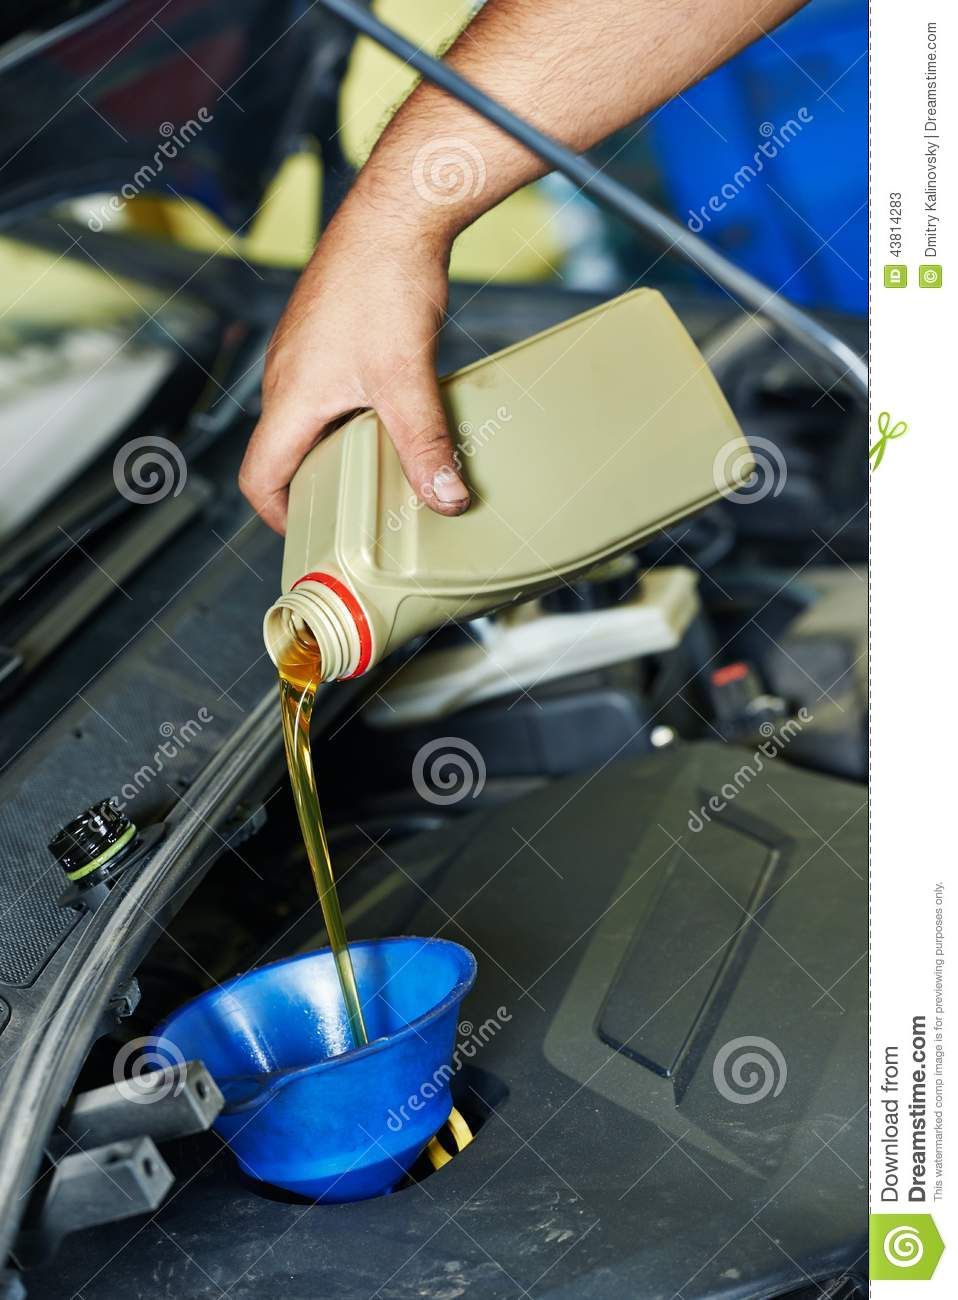 Car Mechanic Pouring Oil Into Motor Engine Stock Photo Image 43814283